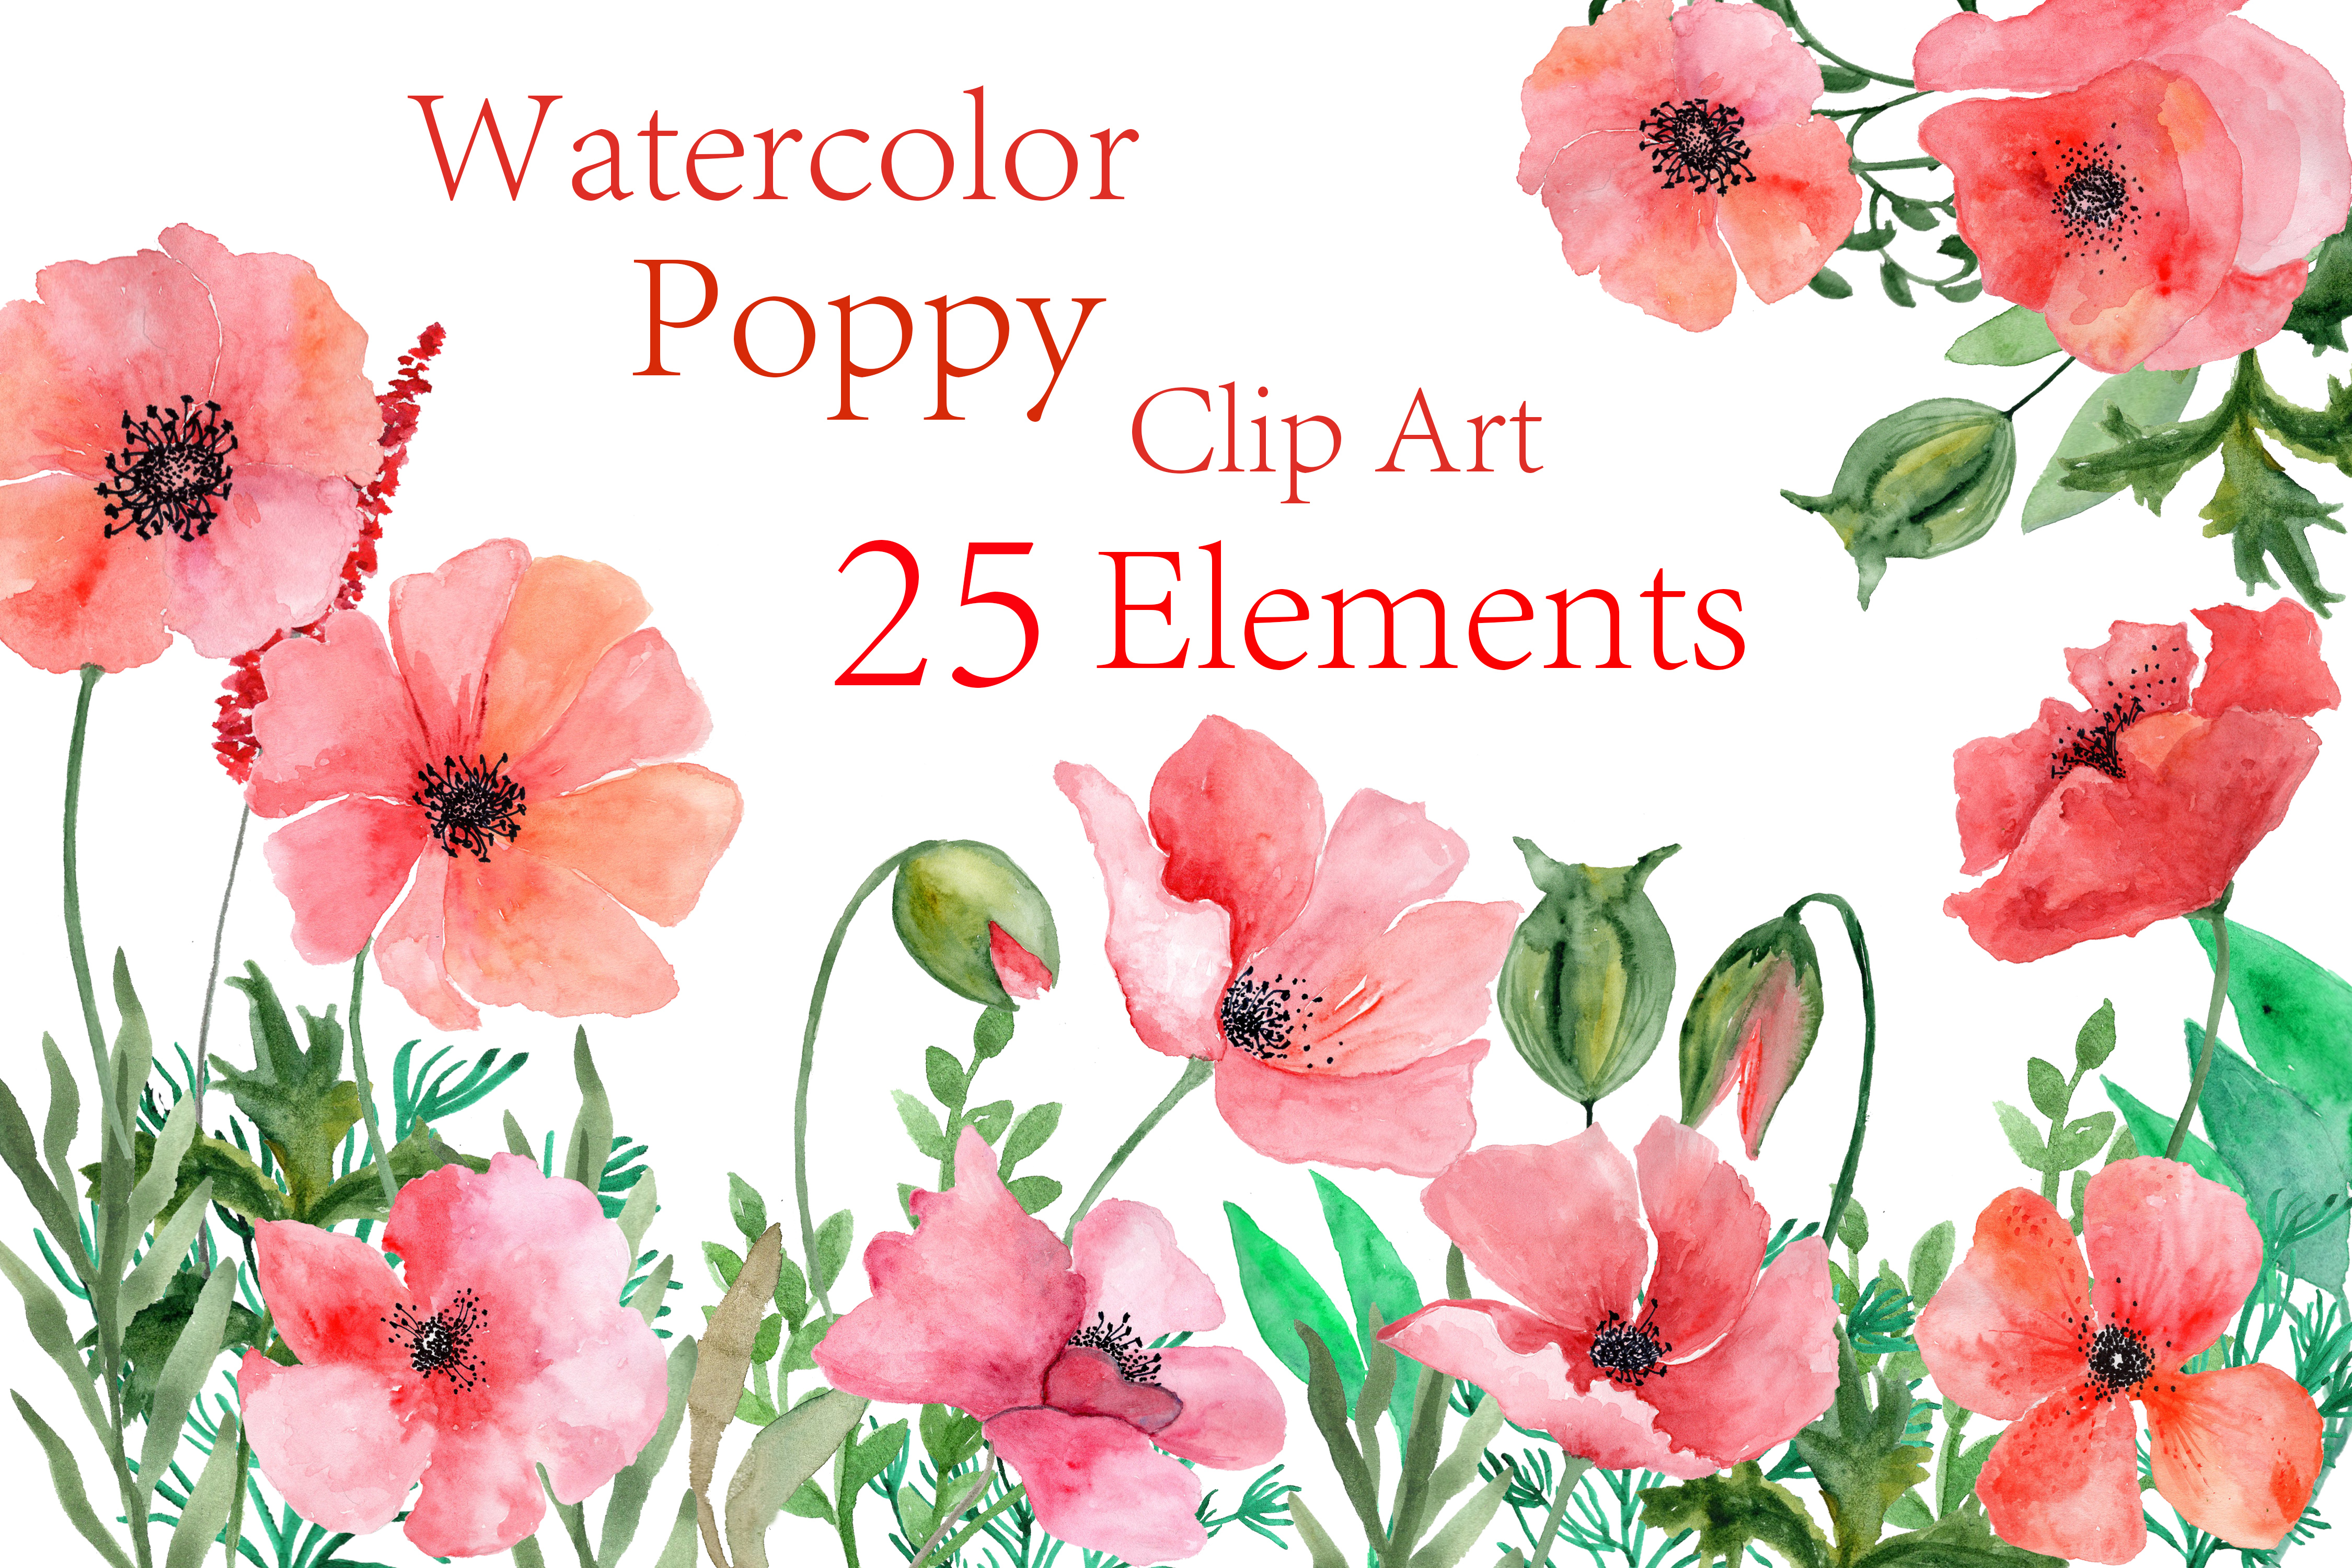 Poppy clipart watercolor. Flowers